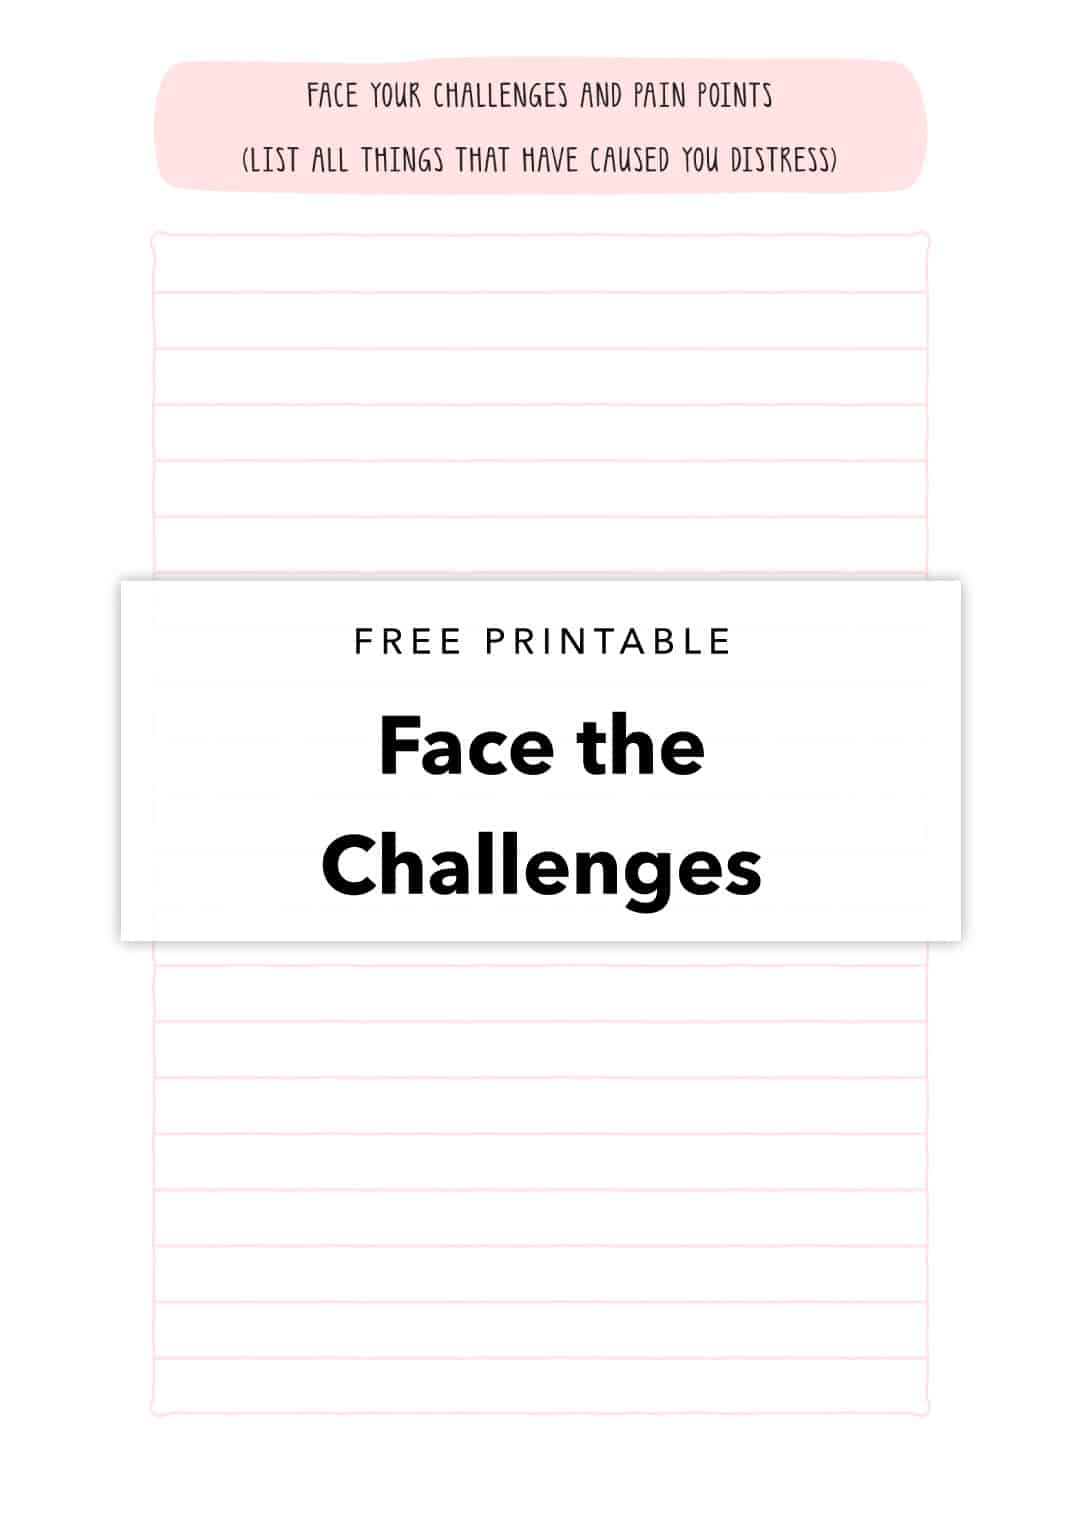 free printable to face your challenges